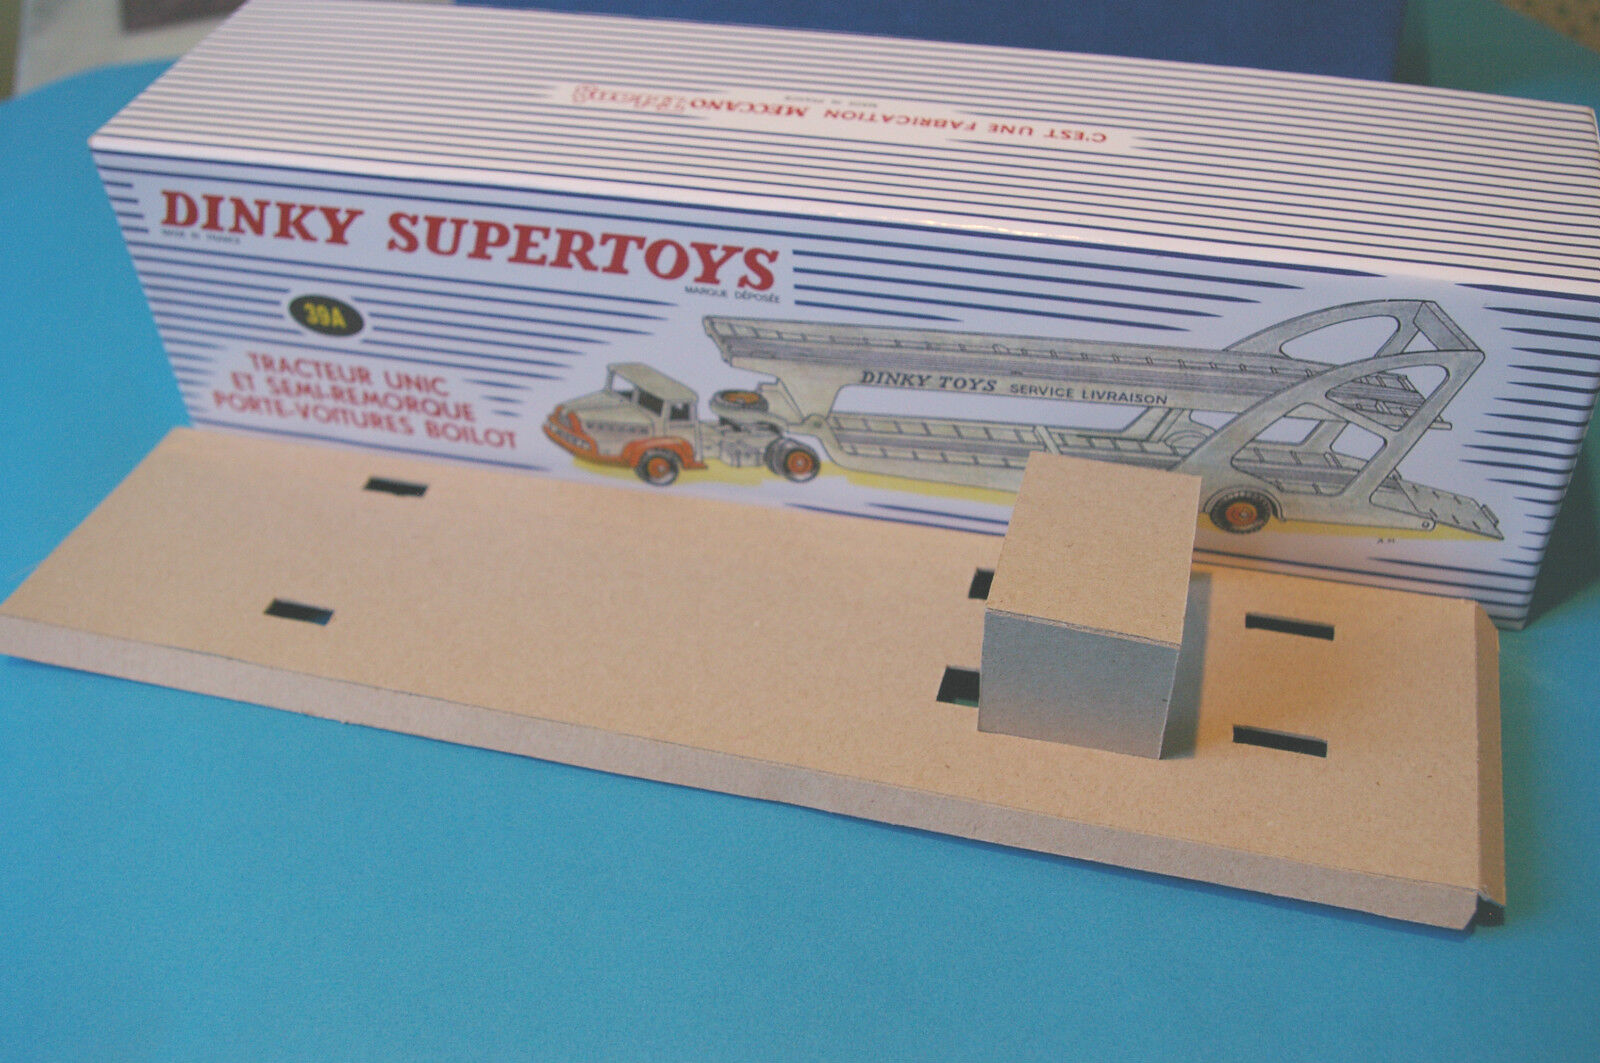 BOITE   DINKY SUPERTOYS BOILOT  TRACTEUR UNIC SA REMORQUE Ref :39 A REPRODUCTIO | Up-to-date Styling